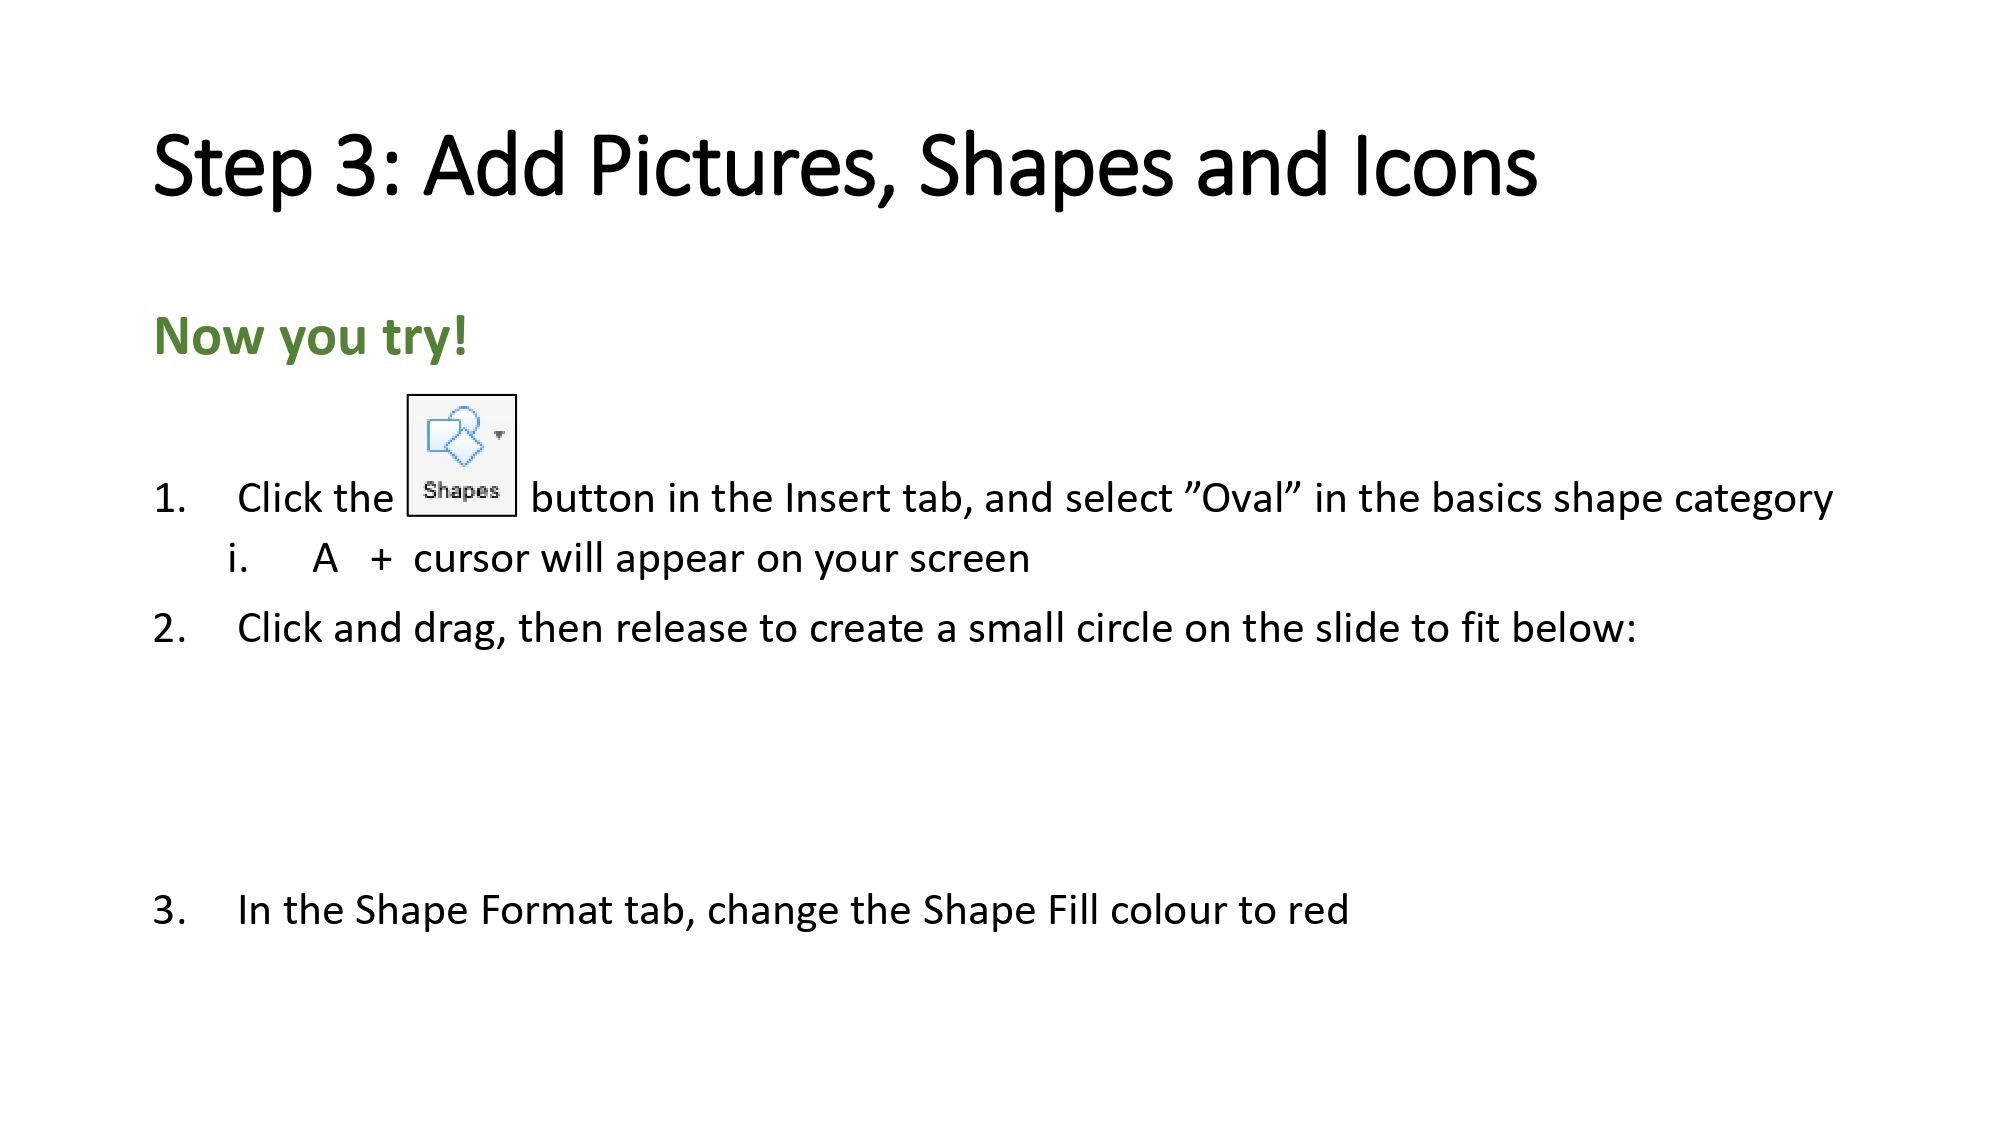 Guide to Creating a Simple PowerPoint_compressed (1)_page-0017